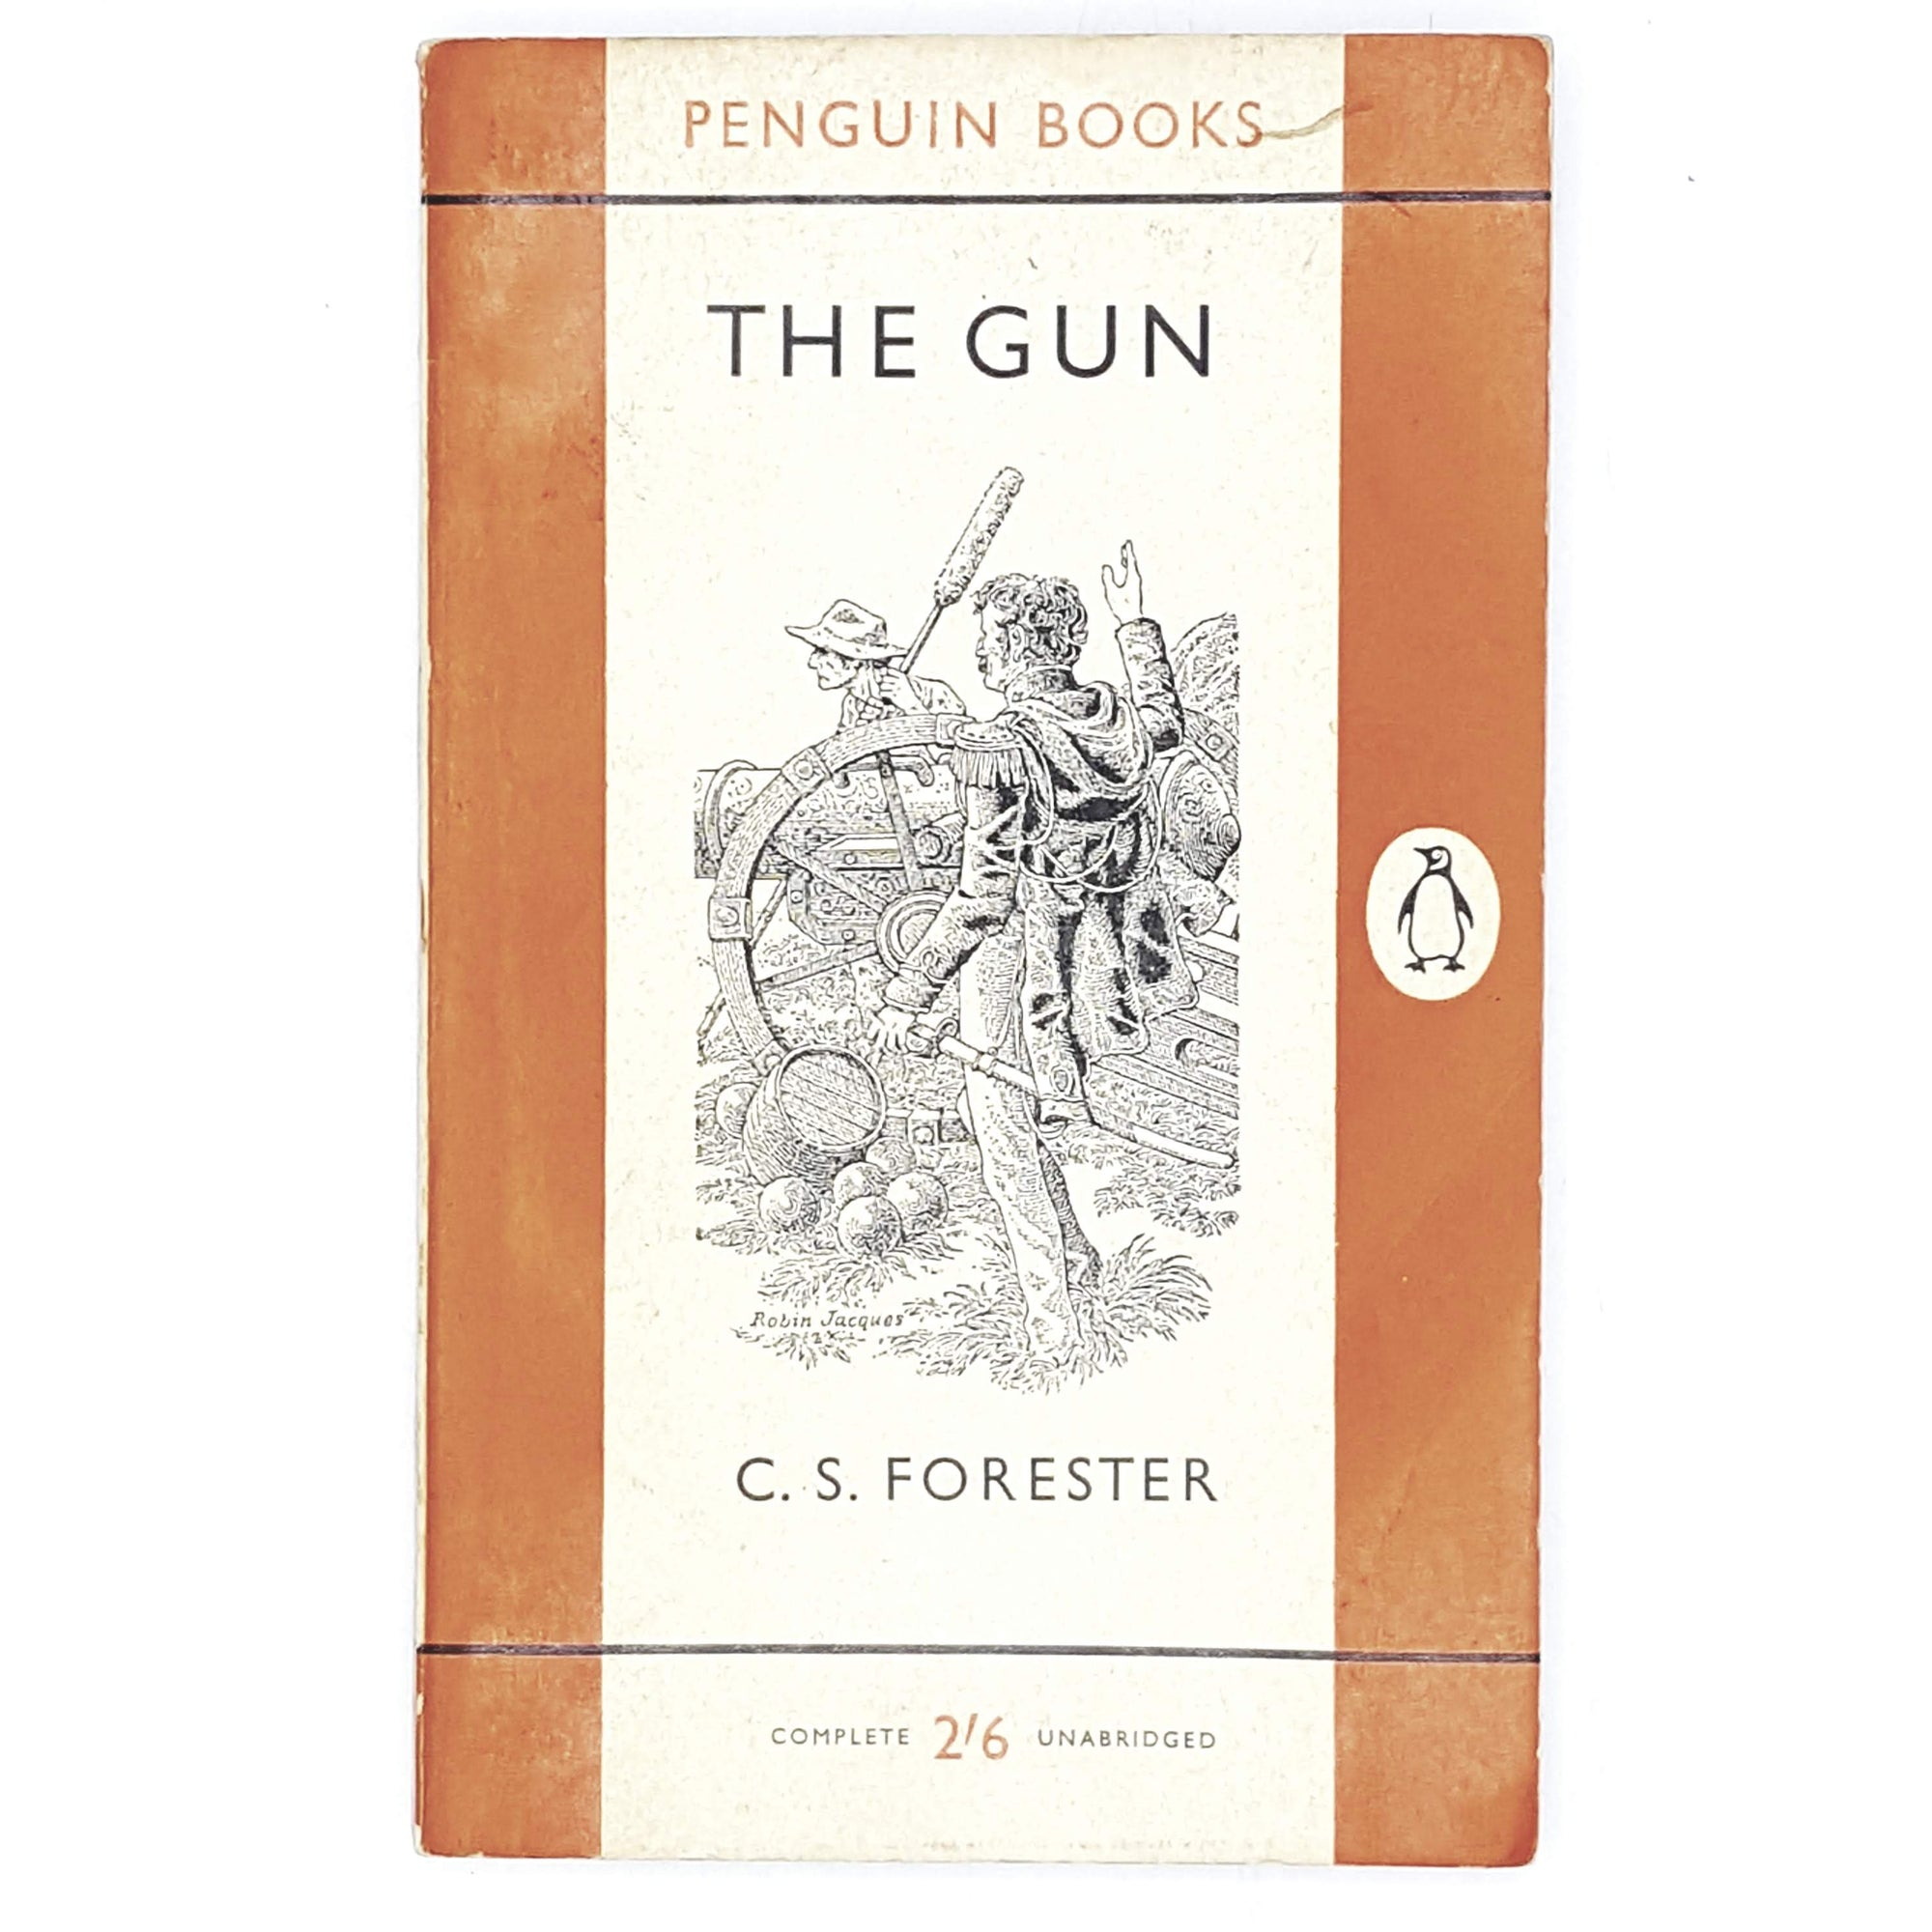 C. S. Forester's The Gun 1956 - 1959